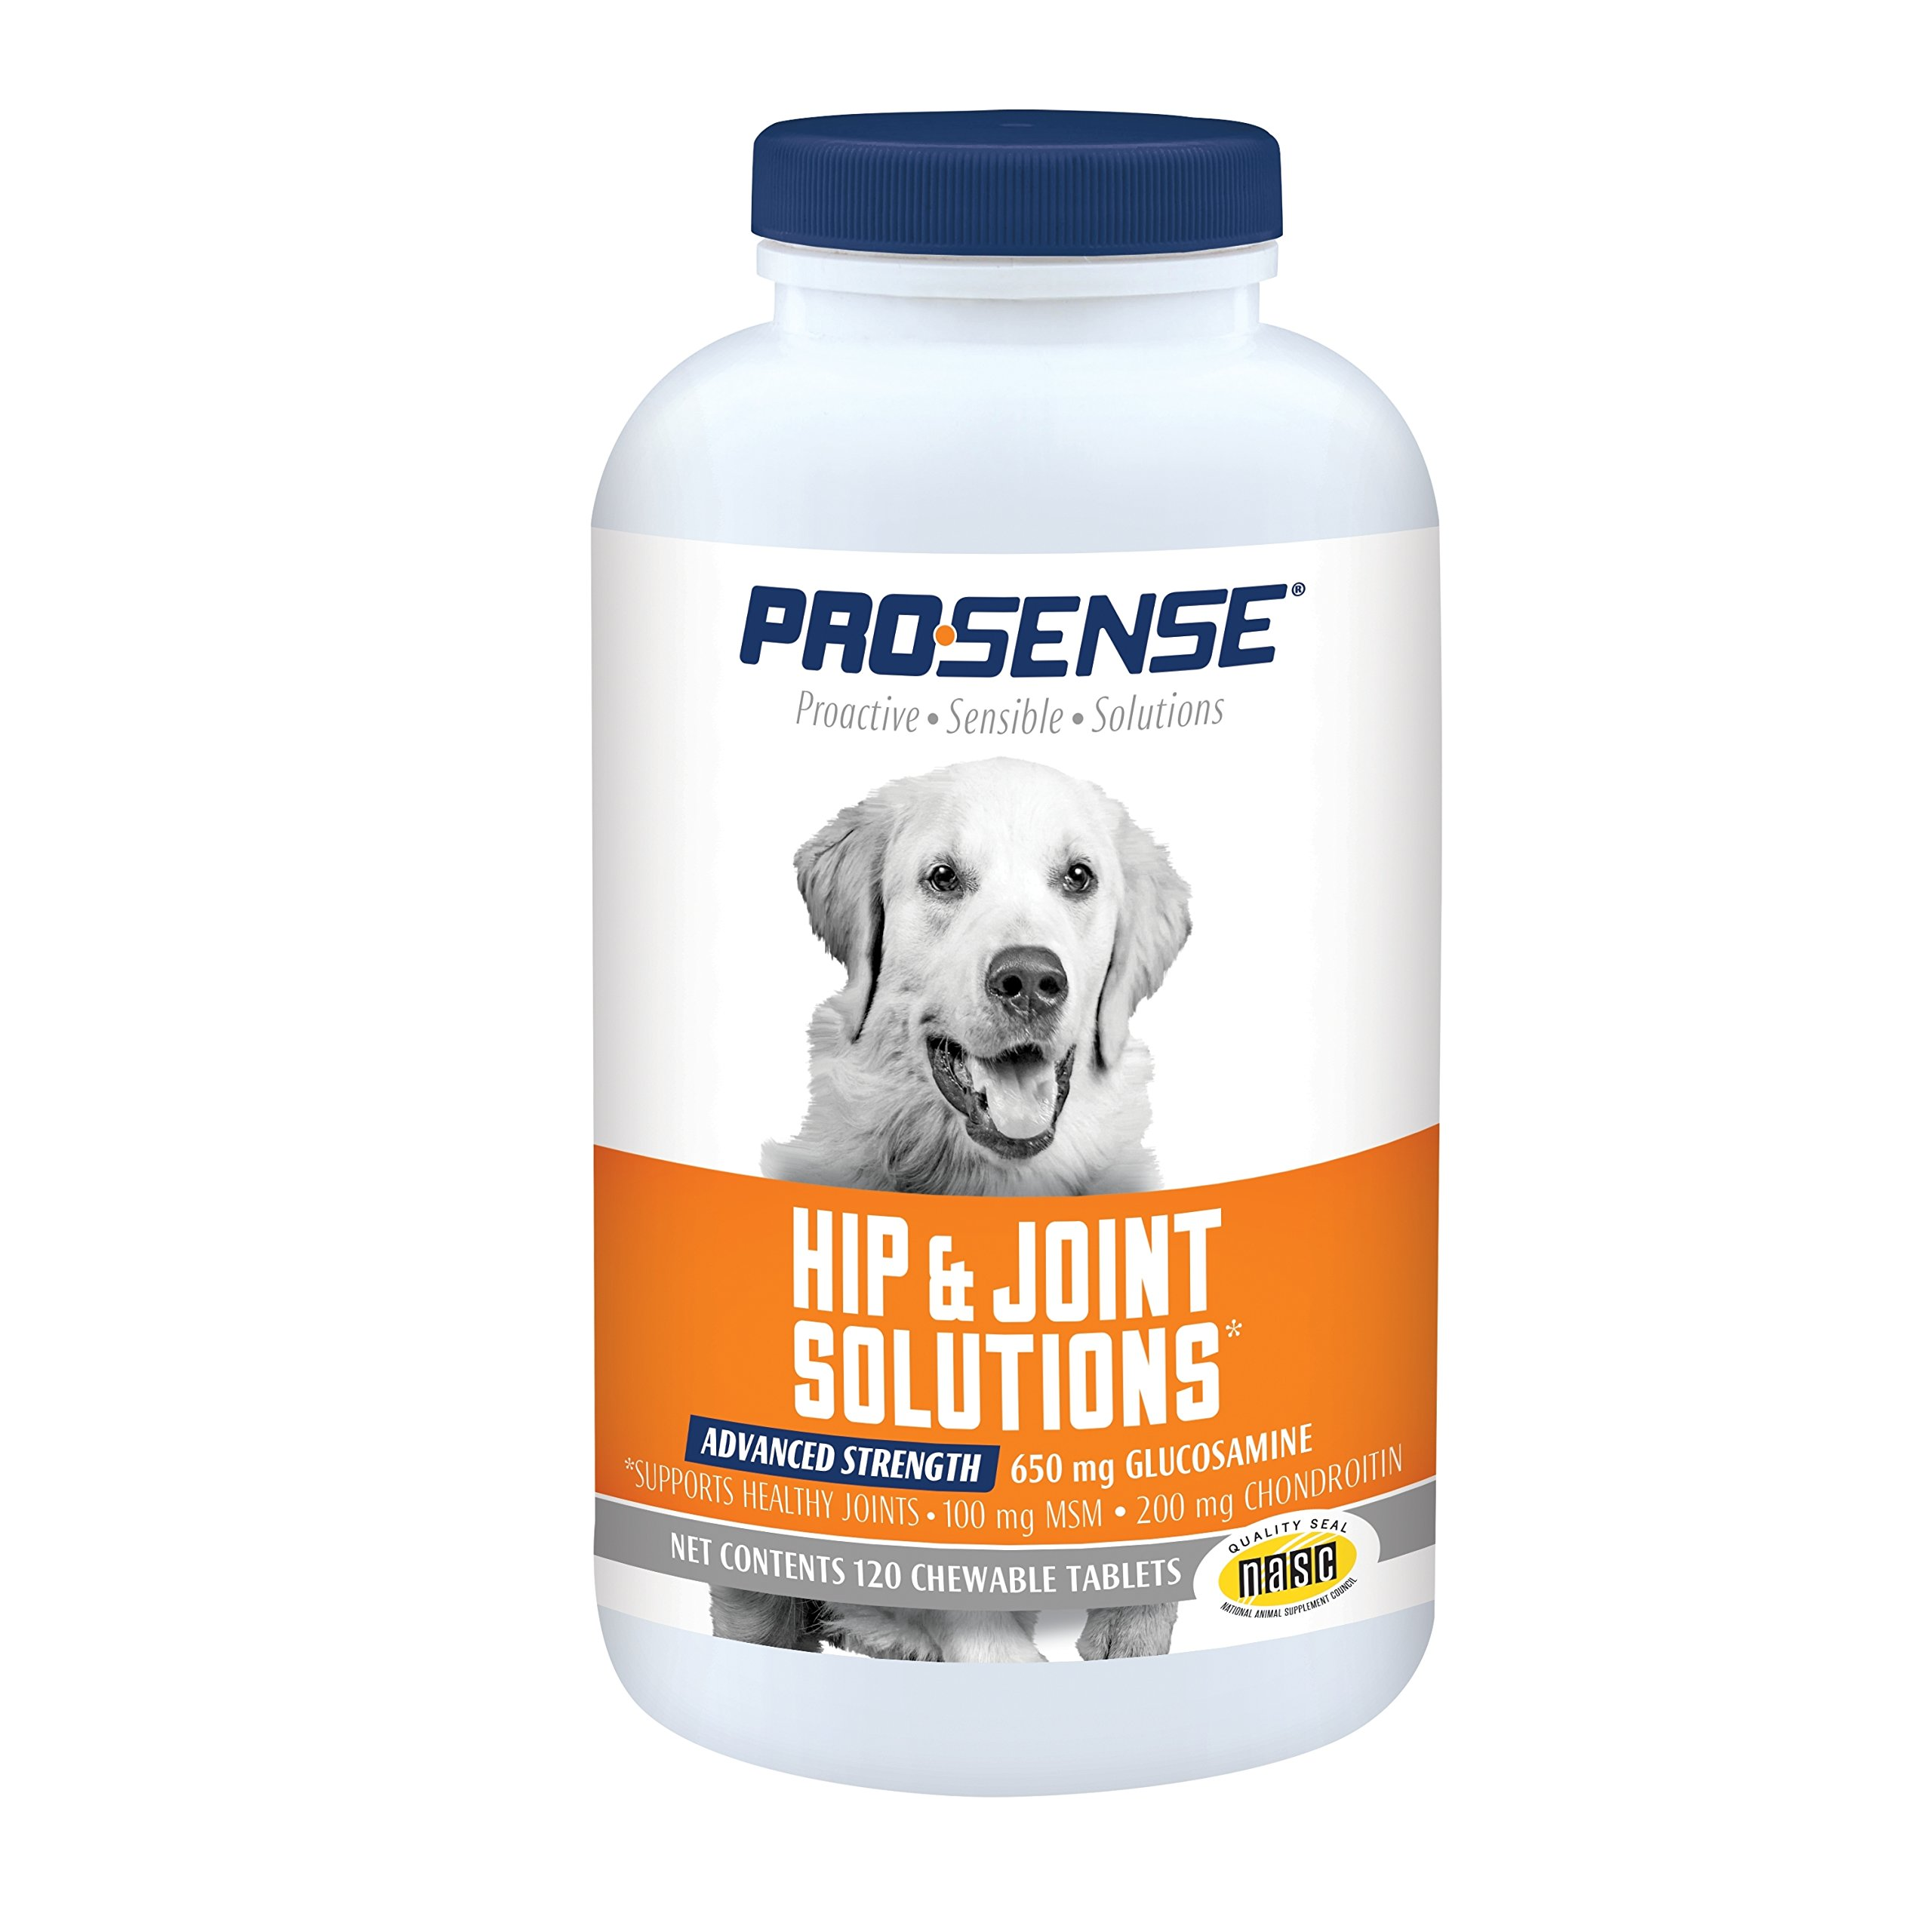 ProSense Advanced Strength for Dogs Glucosamine Chew Tablets 120 ct by ProSense